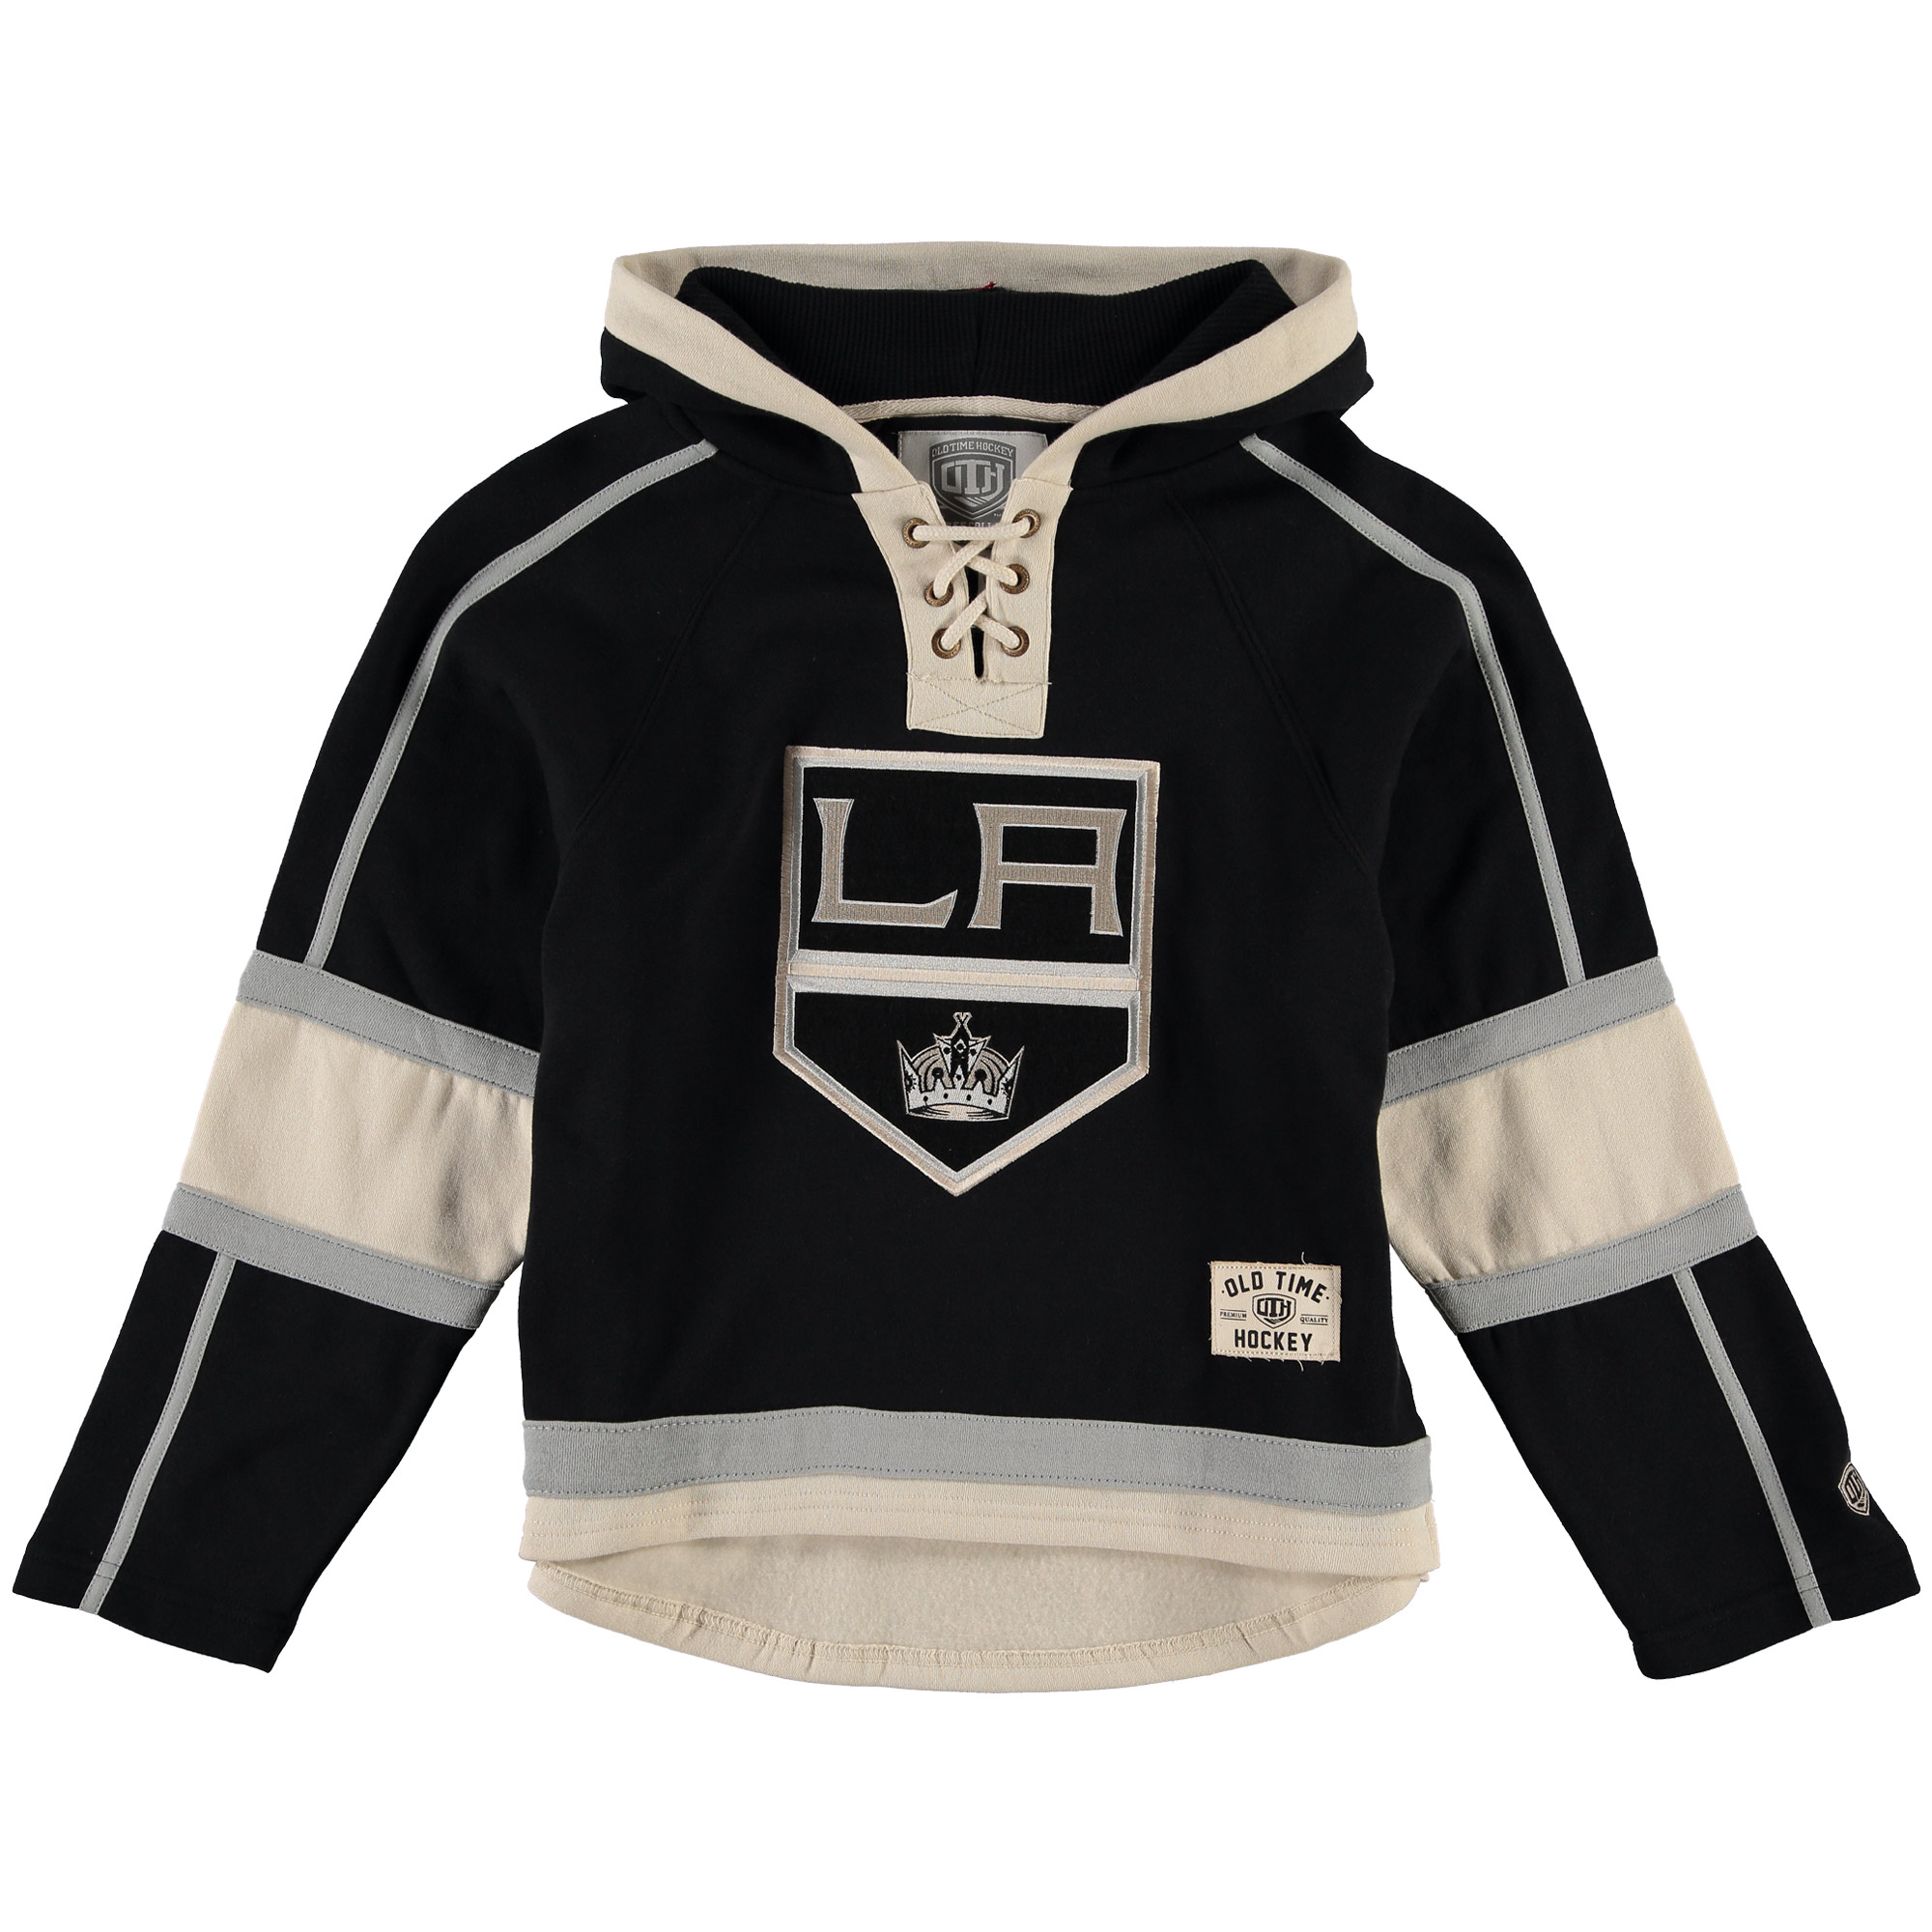 Los Angeles Kings Old Time Hockey Youth Current Lacer Heavyweight Hoodie Black by Old Time Hockey